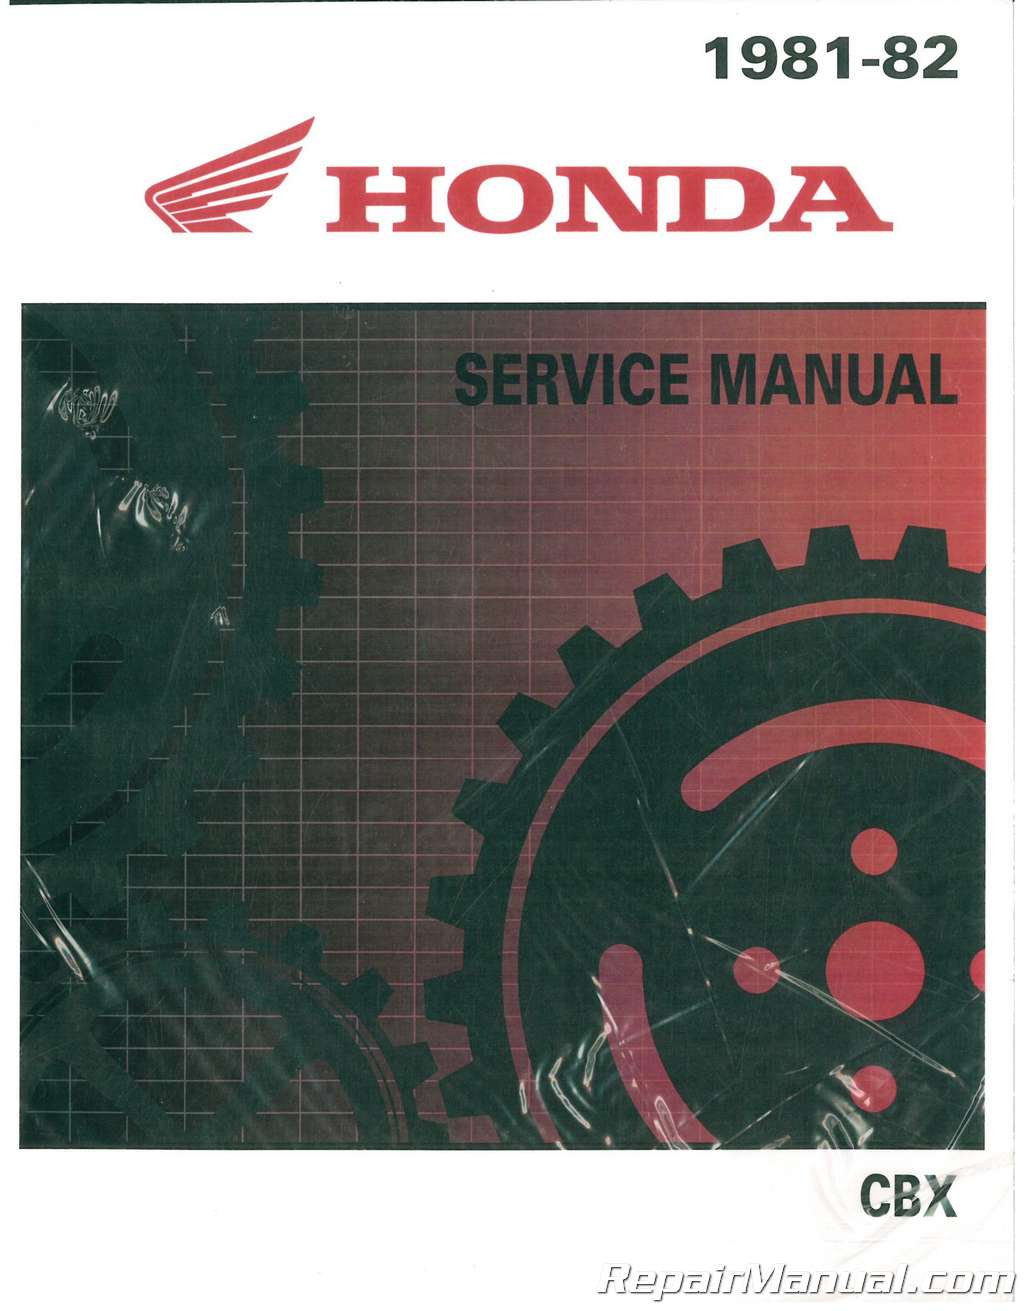 01 Honda Recon Engine Diagram Auto Electrical Wiring Gallery